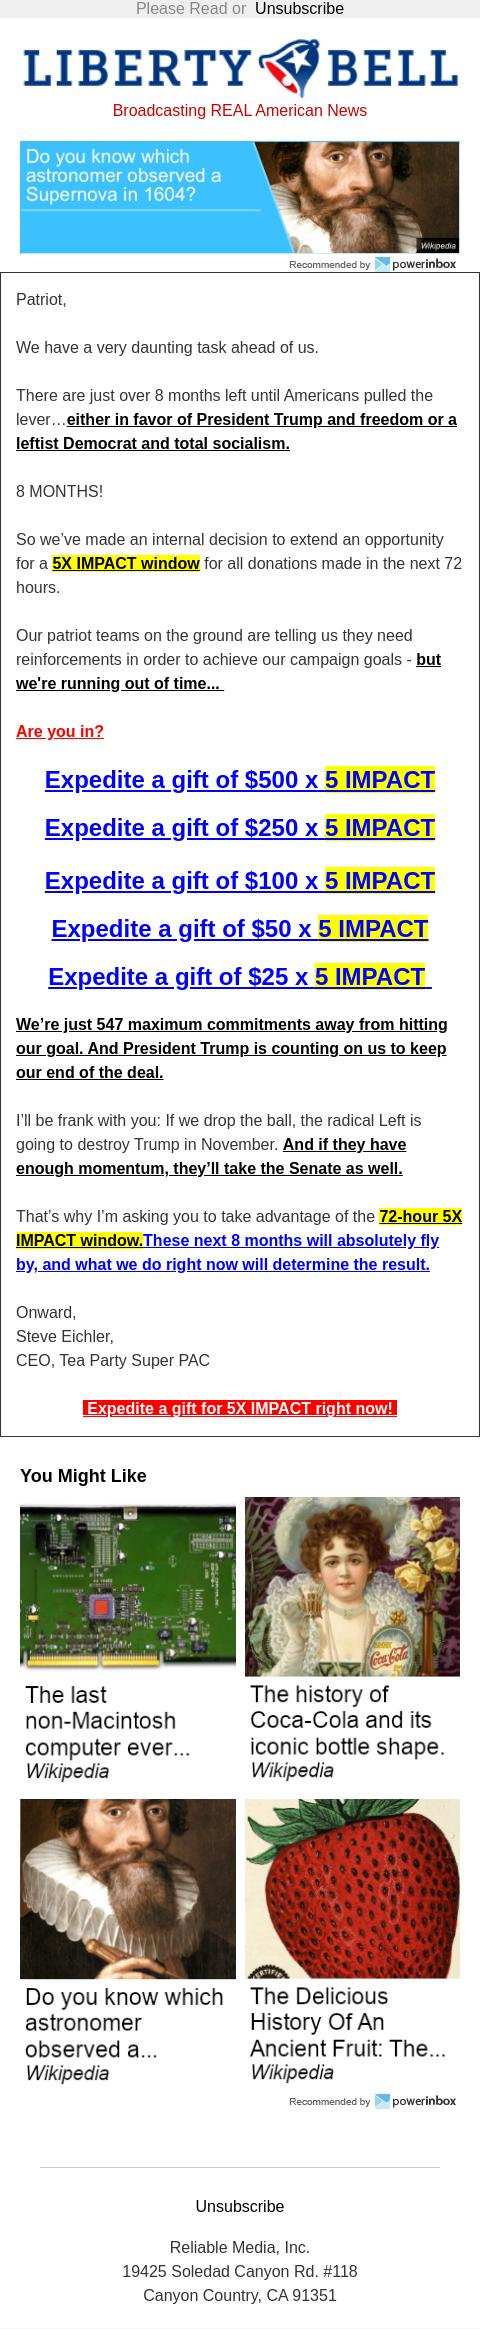 Screenshot of the email generated on import